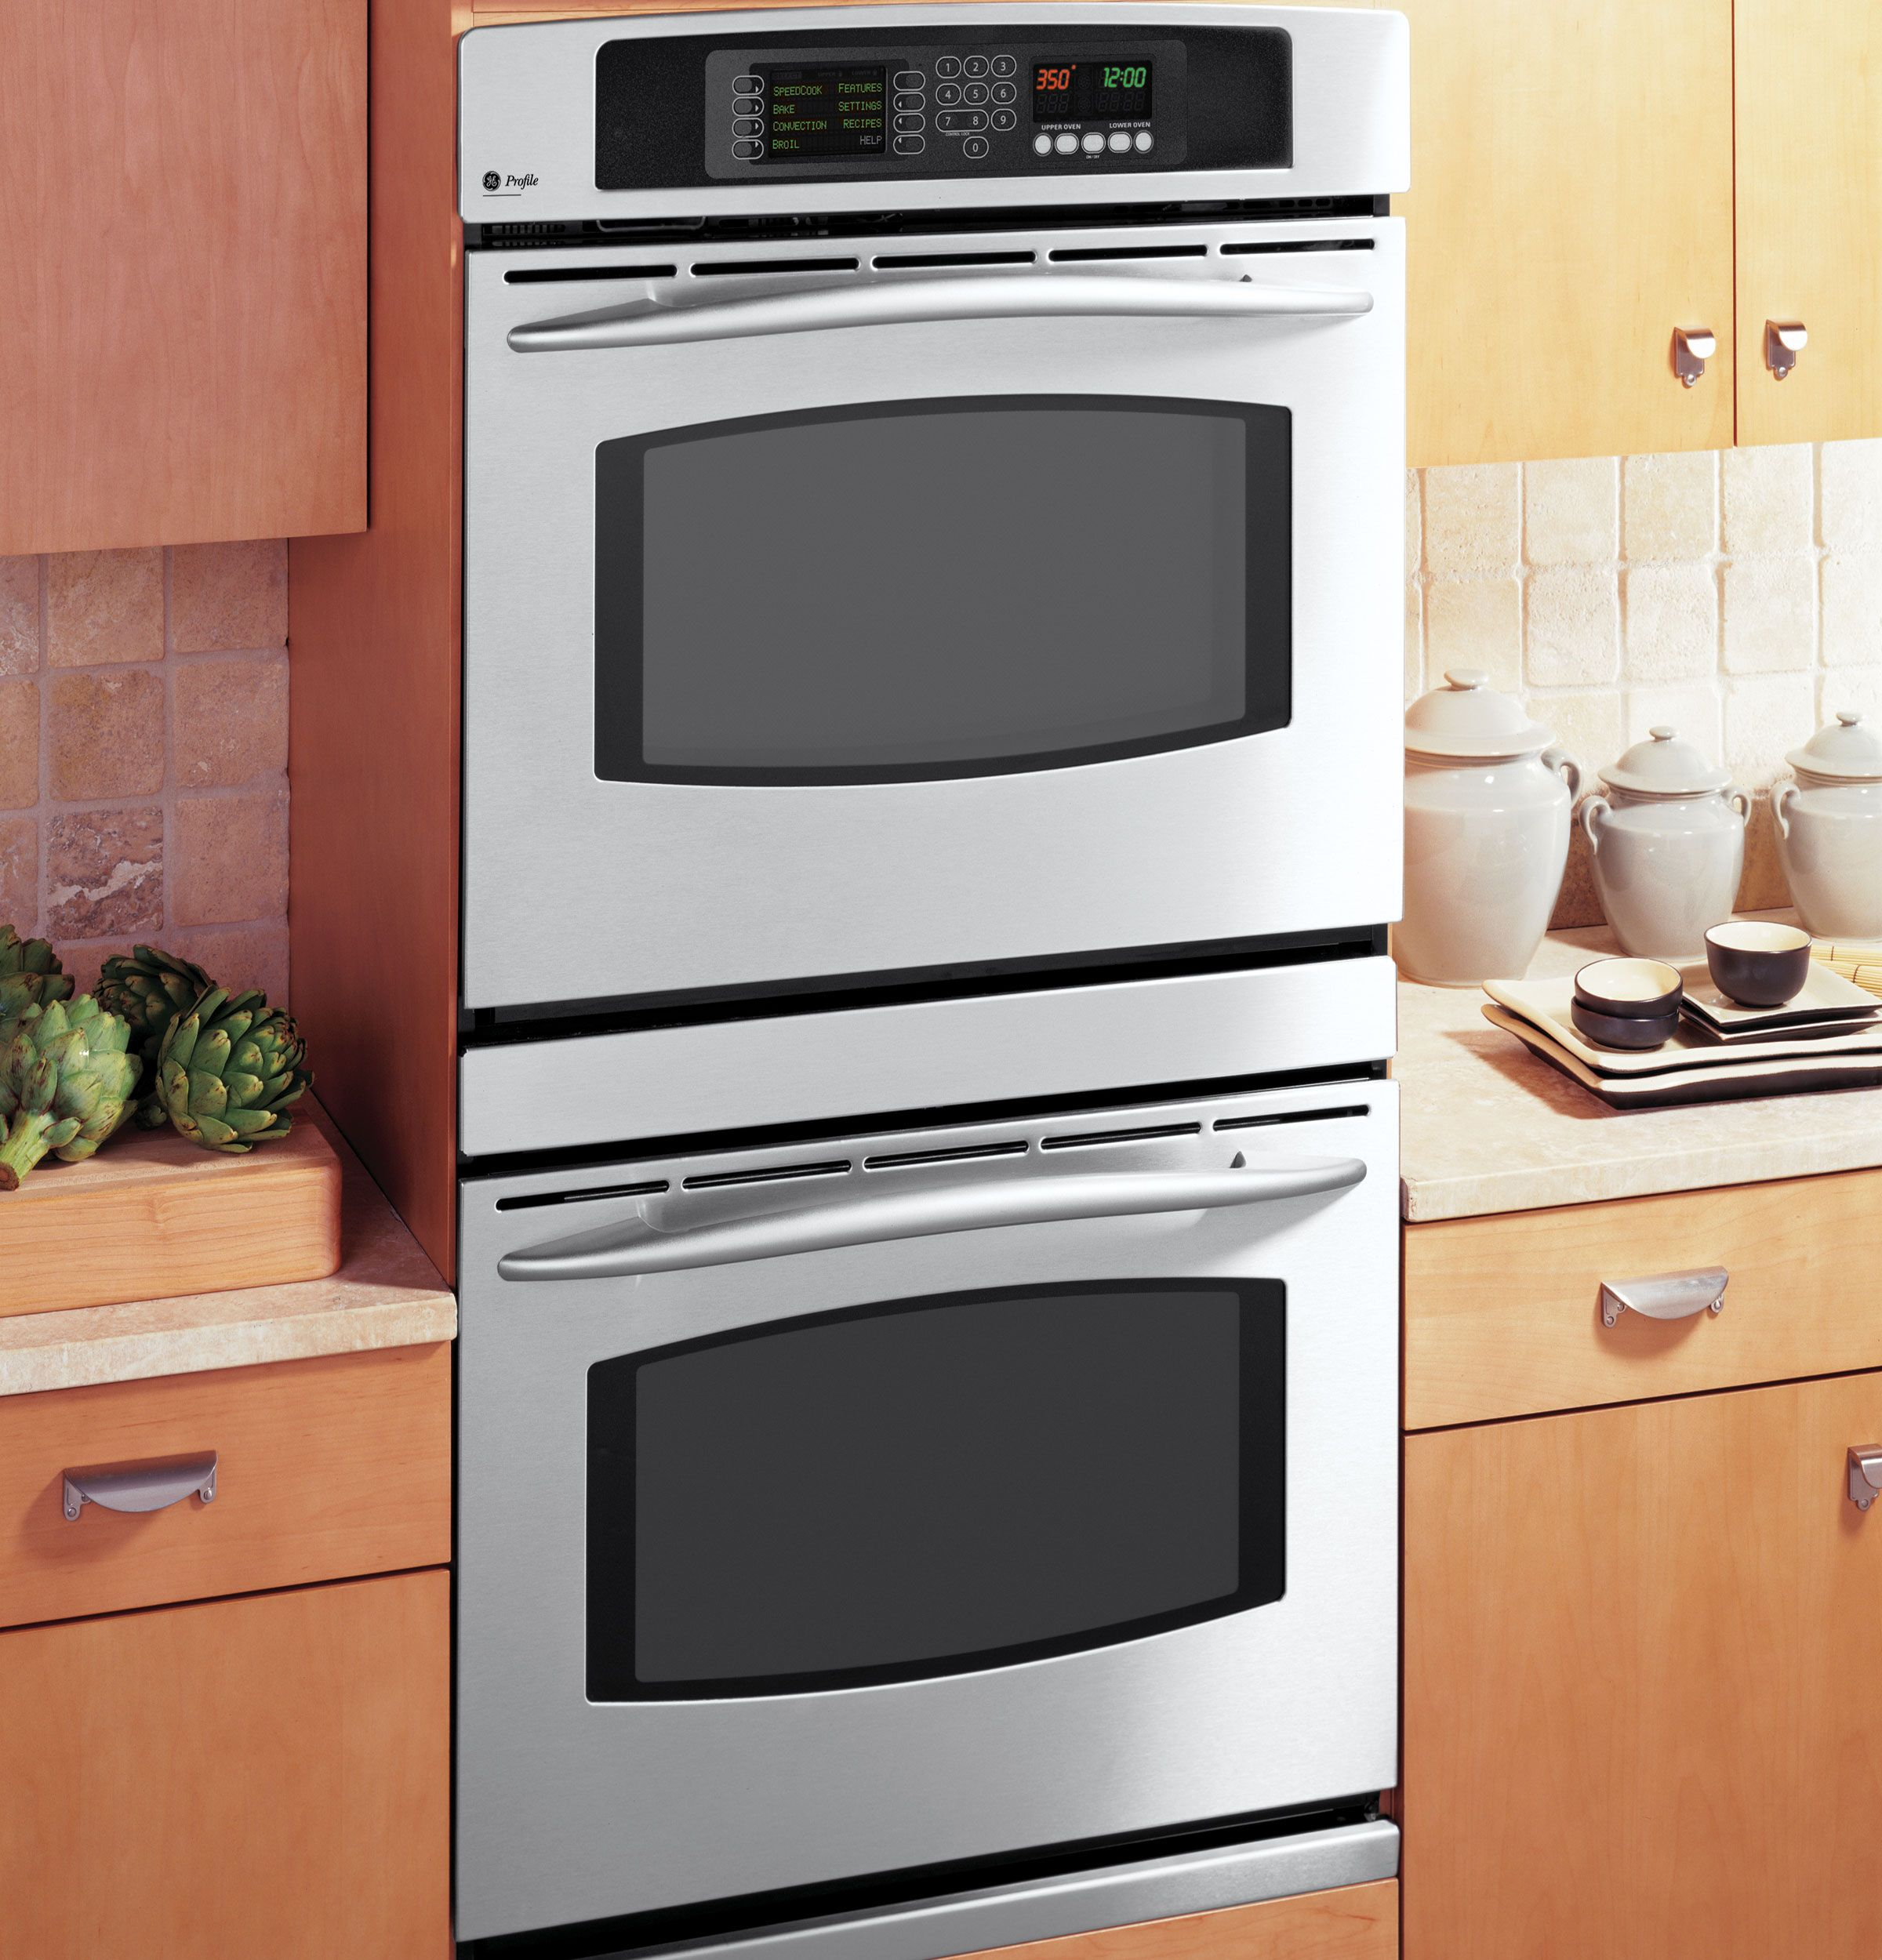 JT980SKSS | GE Profile Built In Double Oven With Trivection® Technology | GE  Appliances